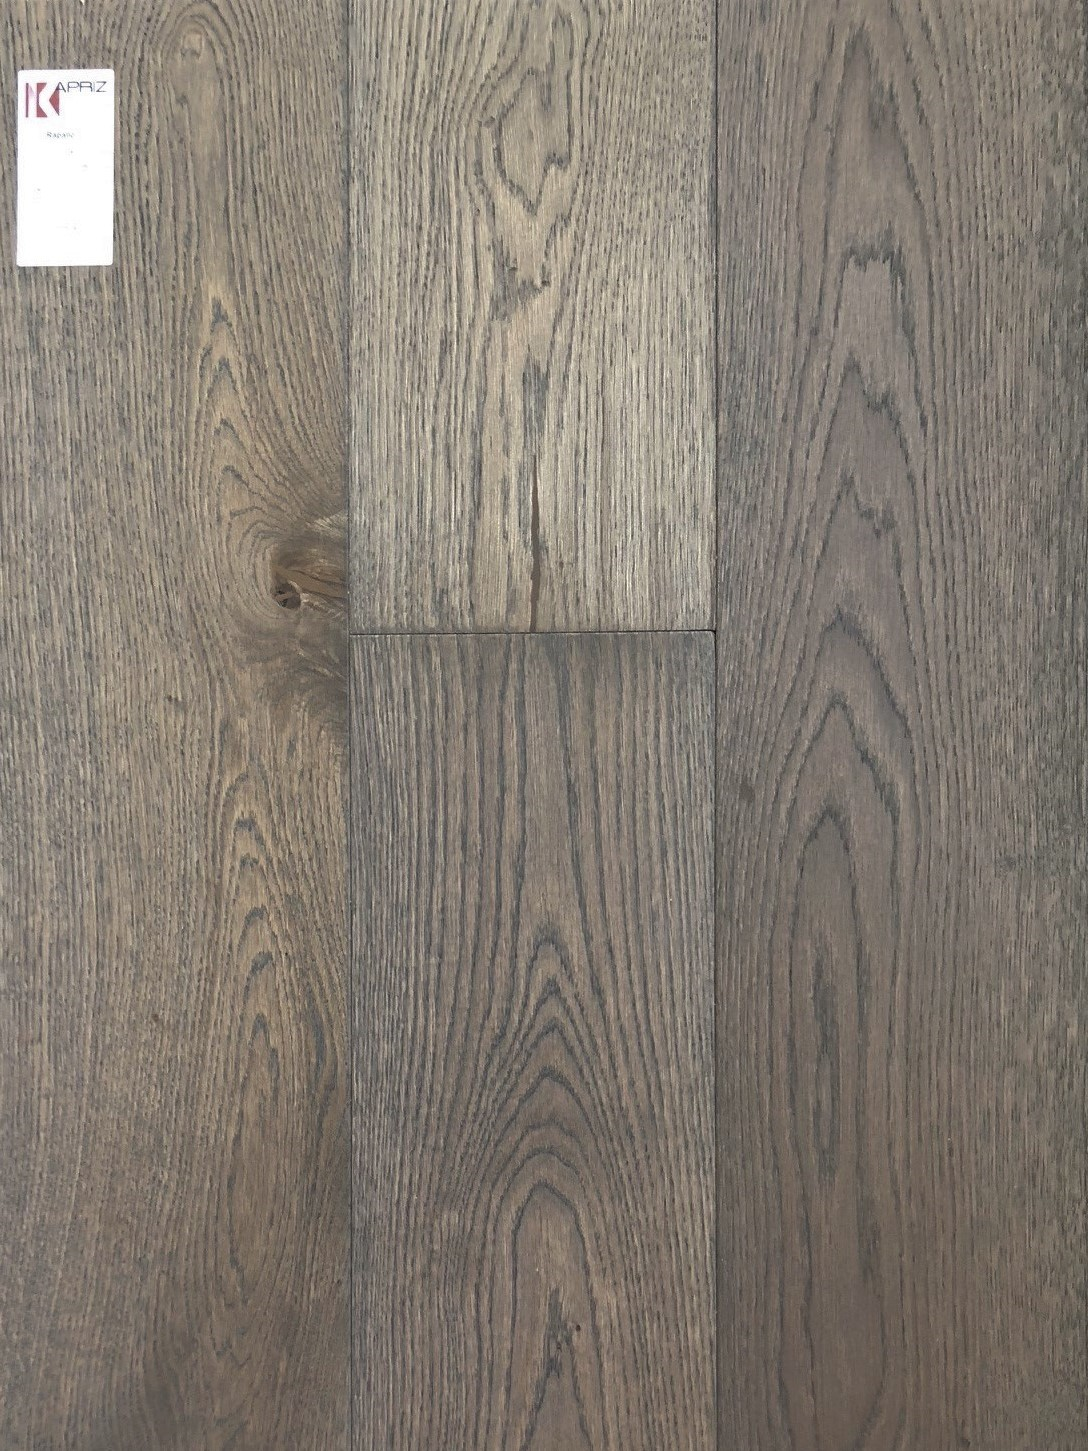 3 4 European Oak Engineered Flooring Rapallo